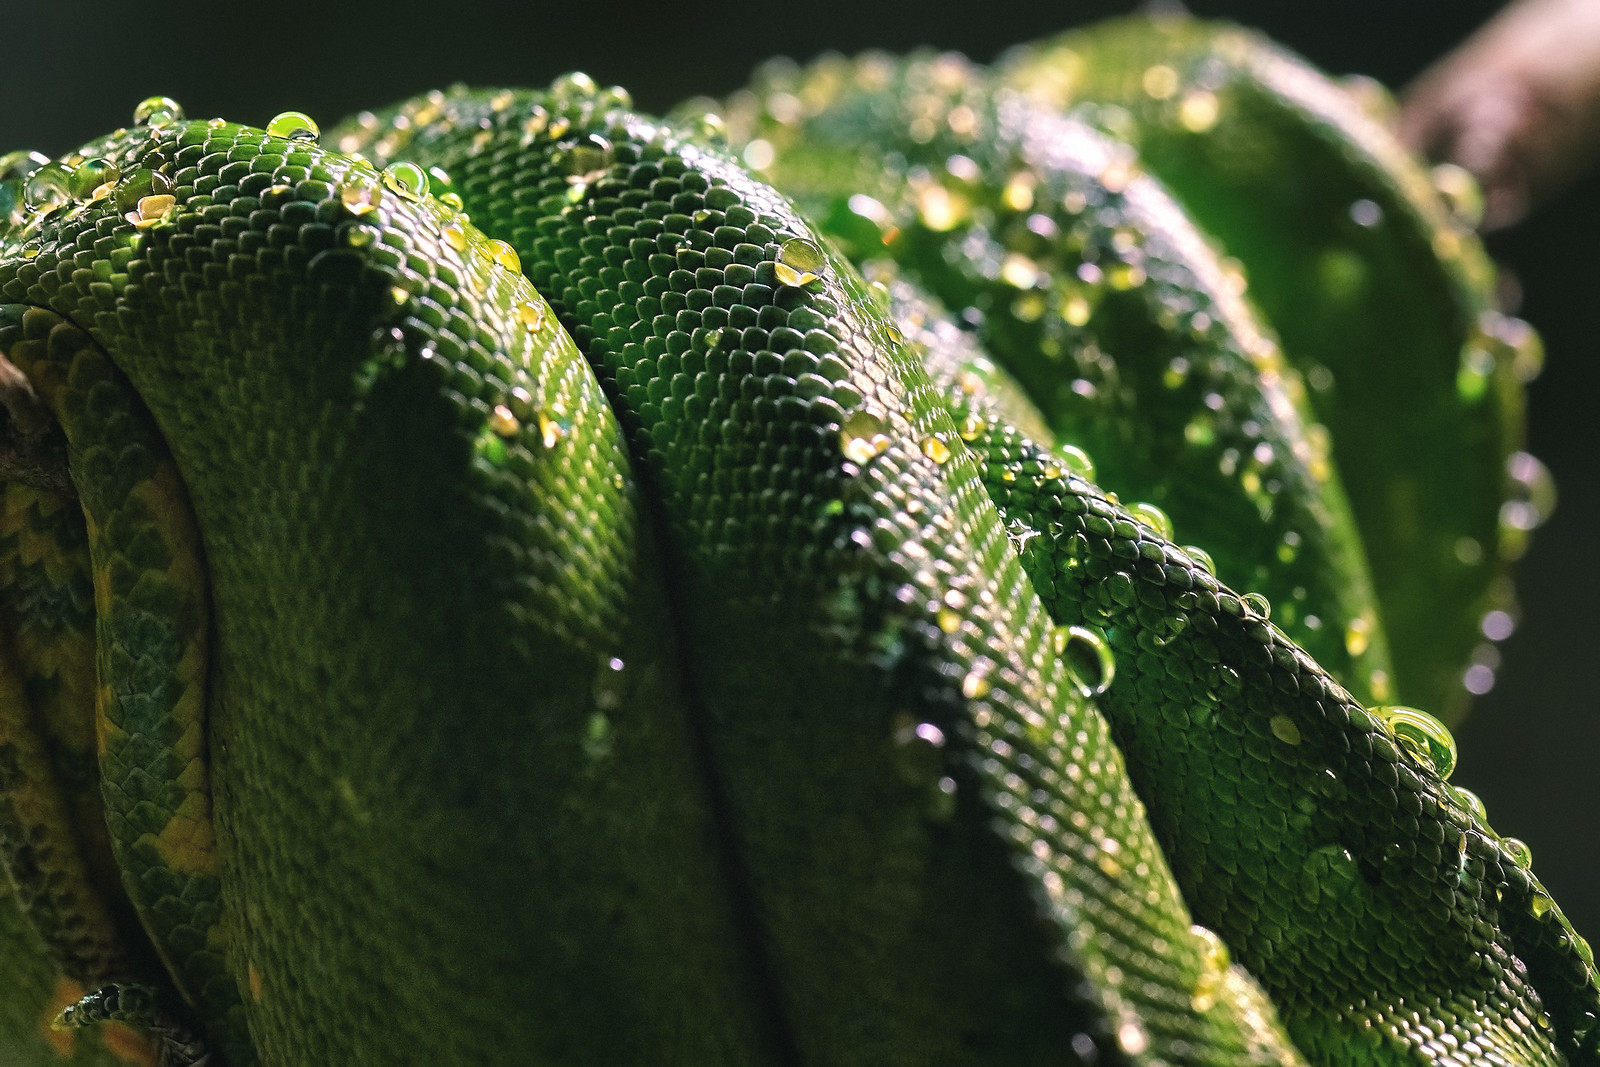 Scales of a Green Tree Python